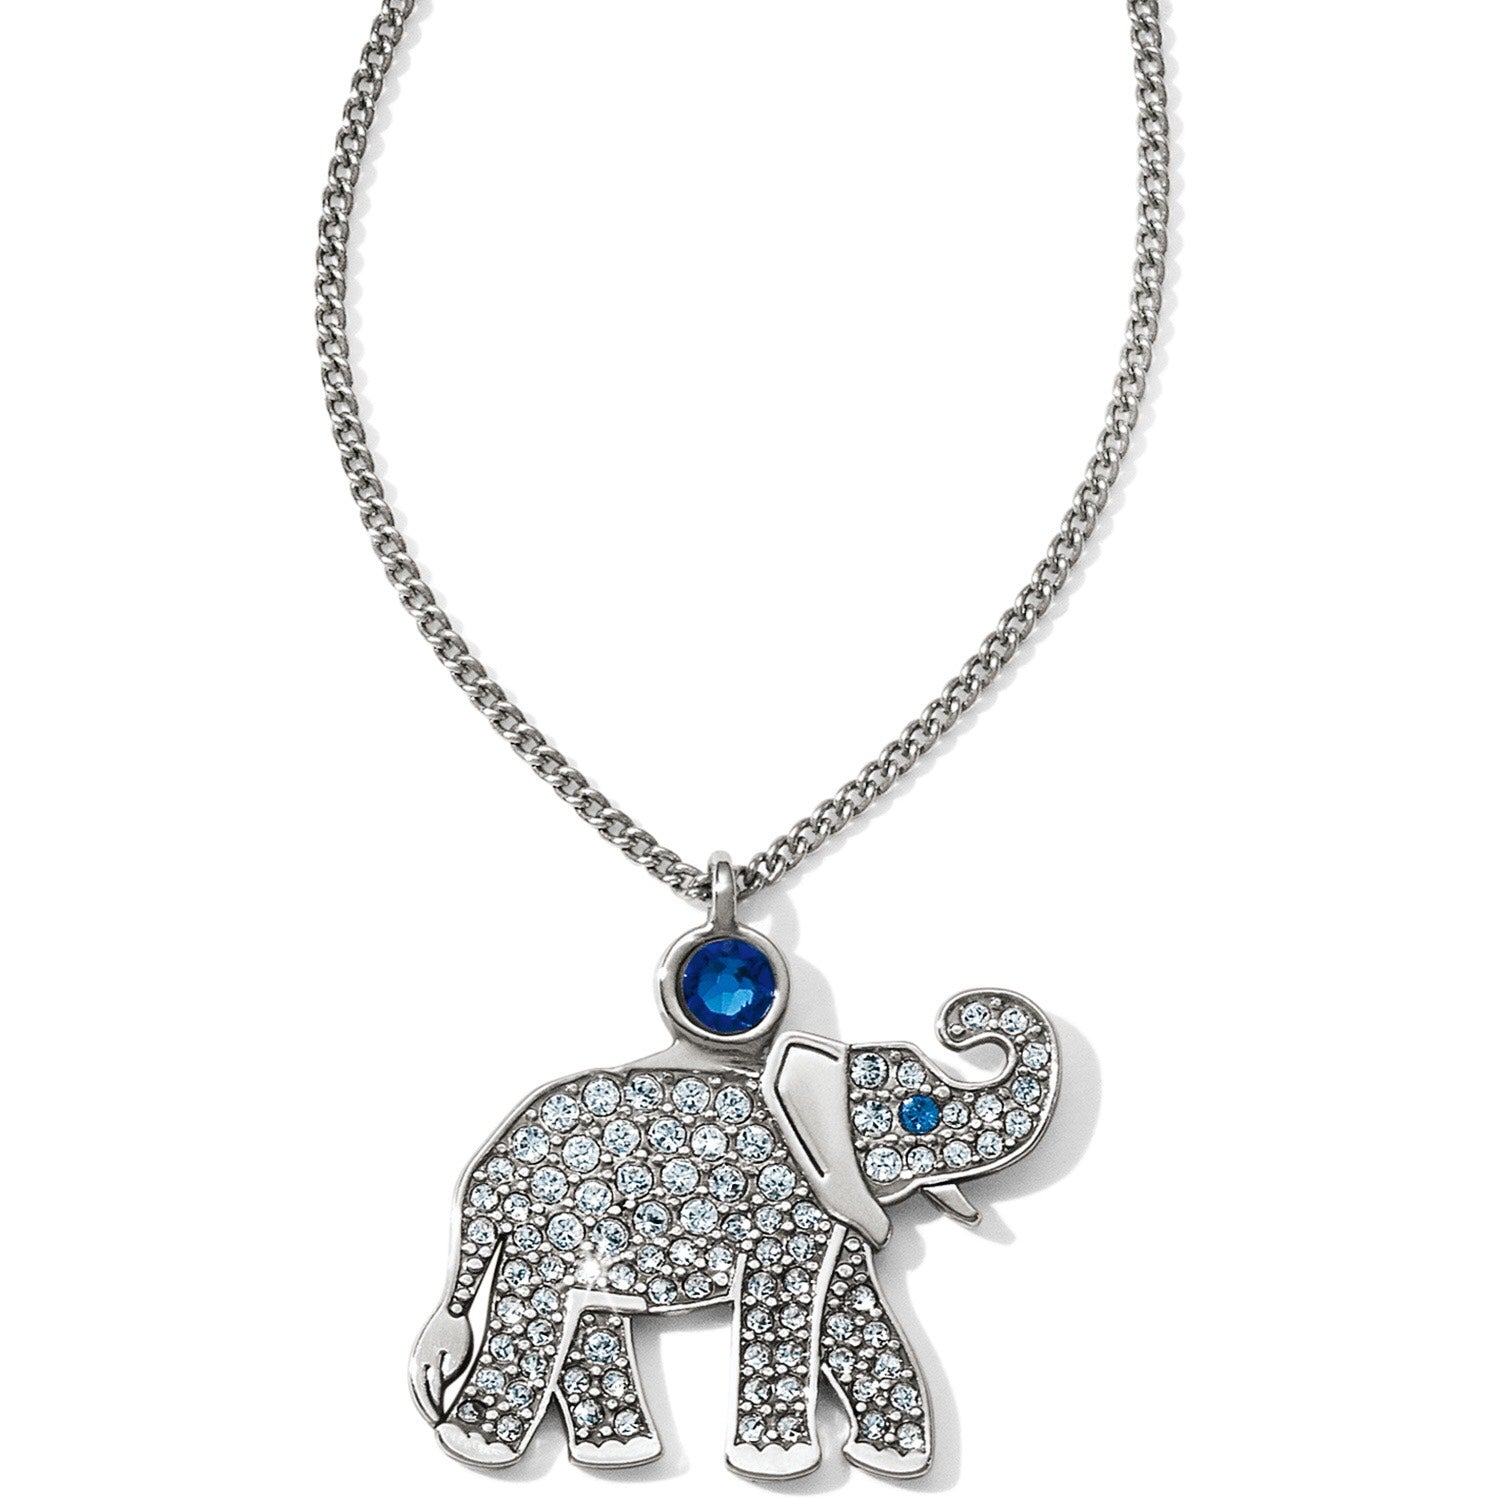 Brighton Elephant Necklace